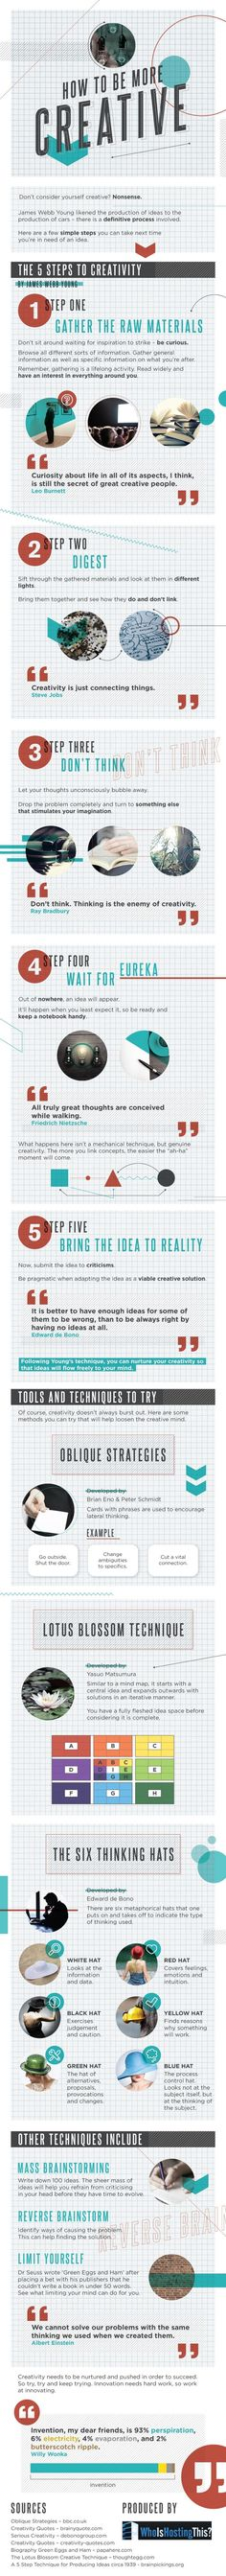 Brilliant ways to tap into your creativity